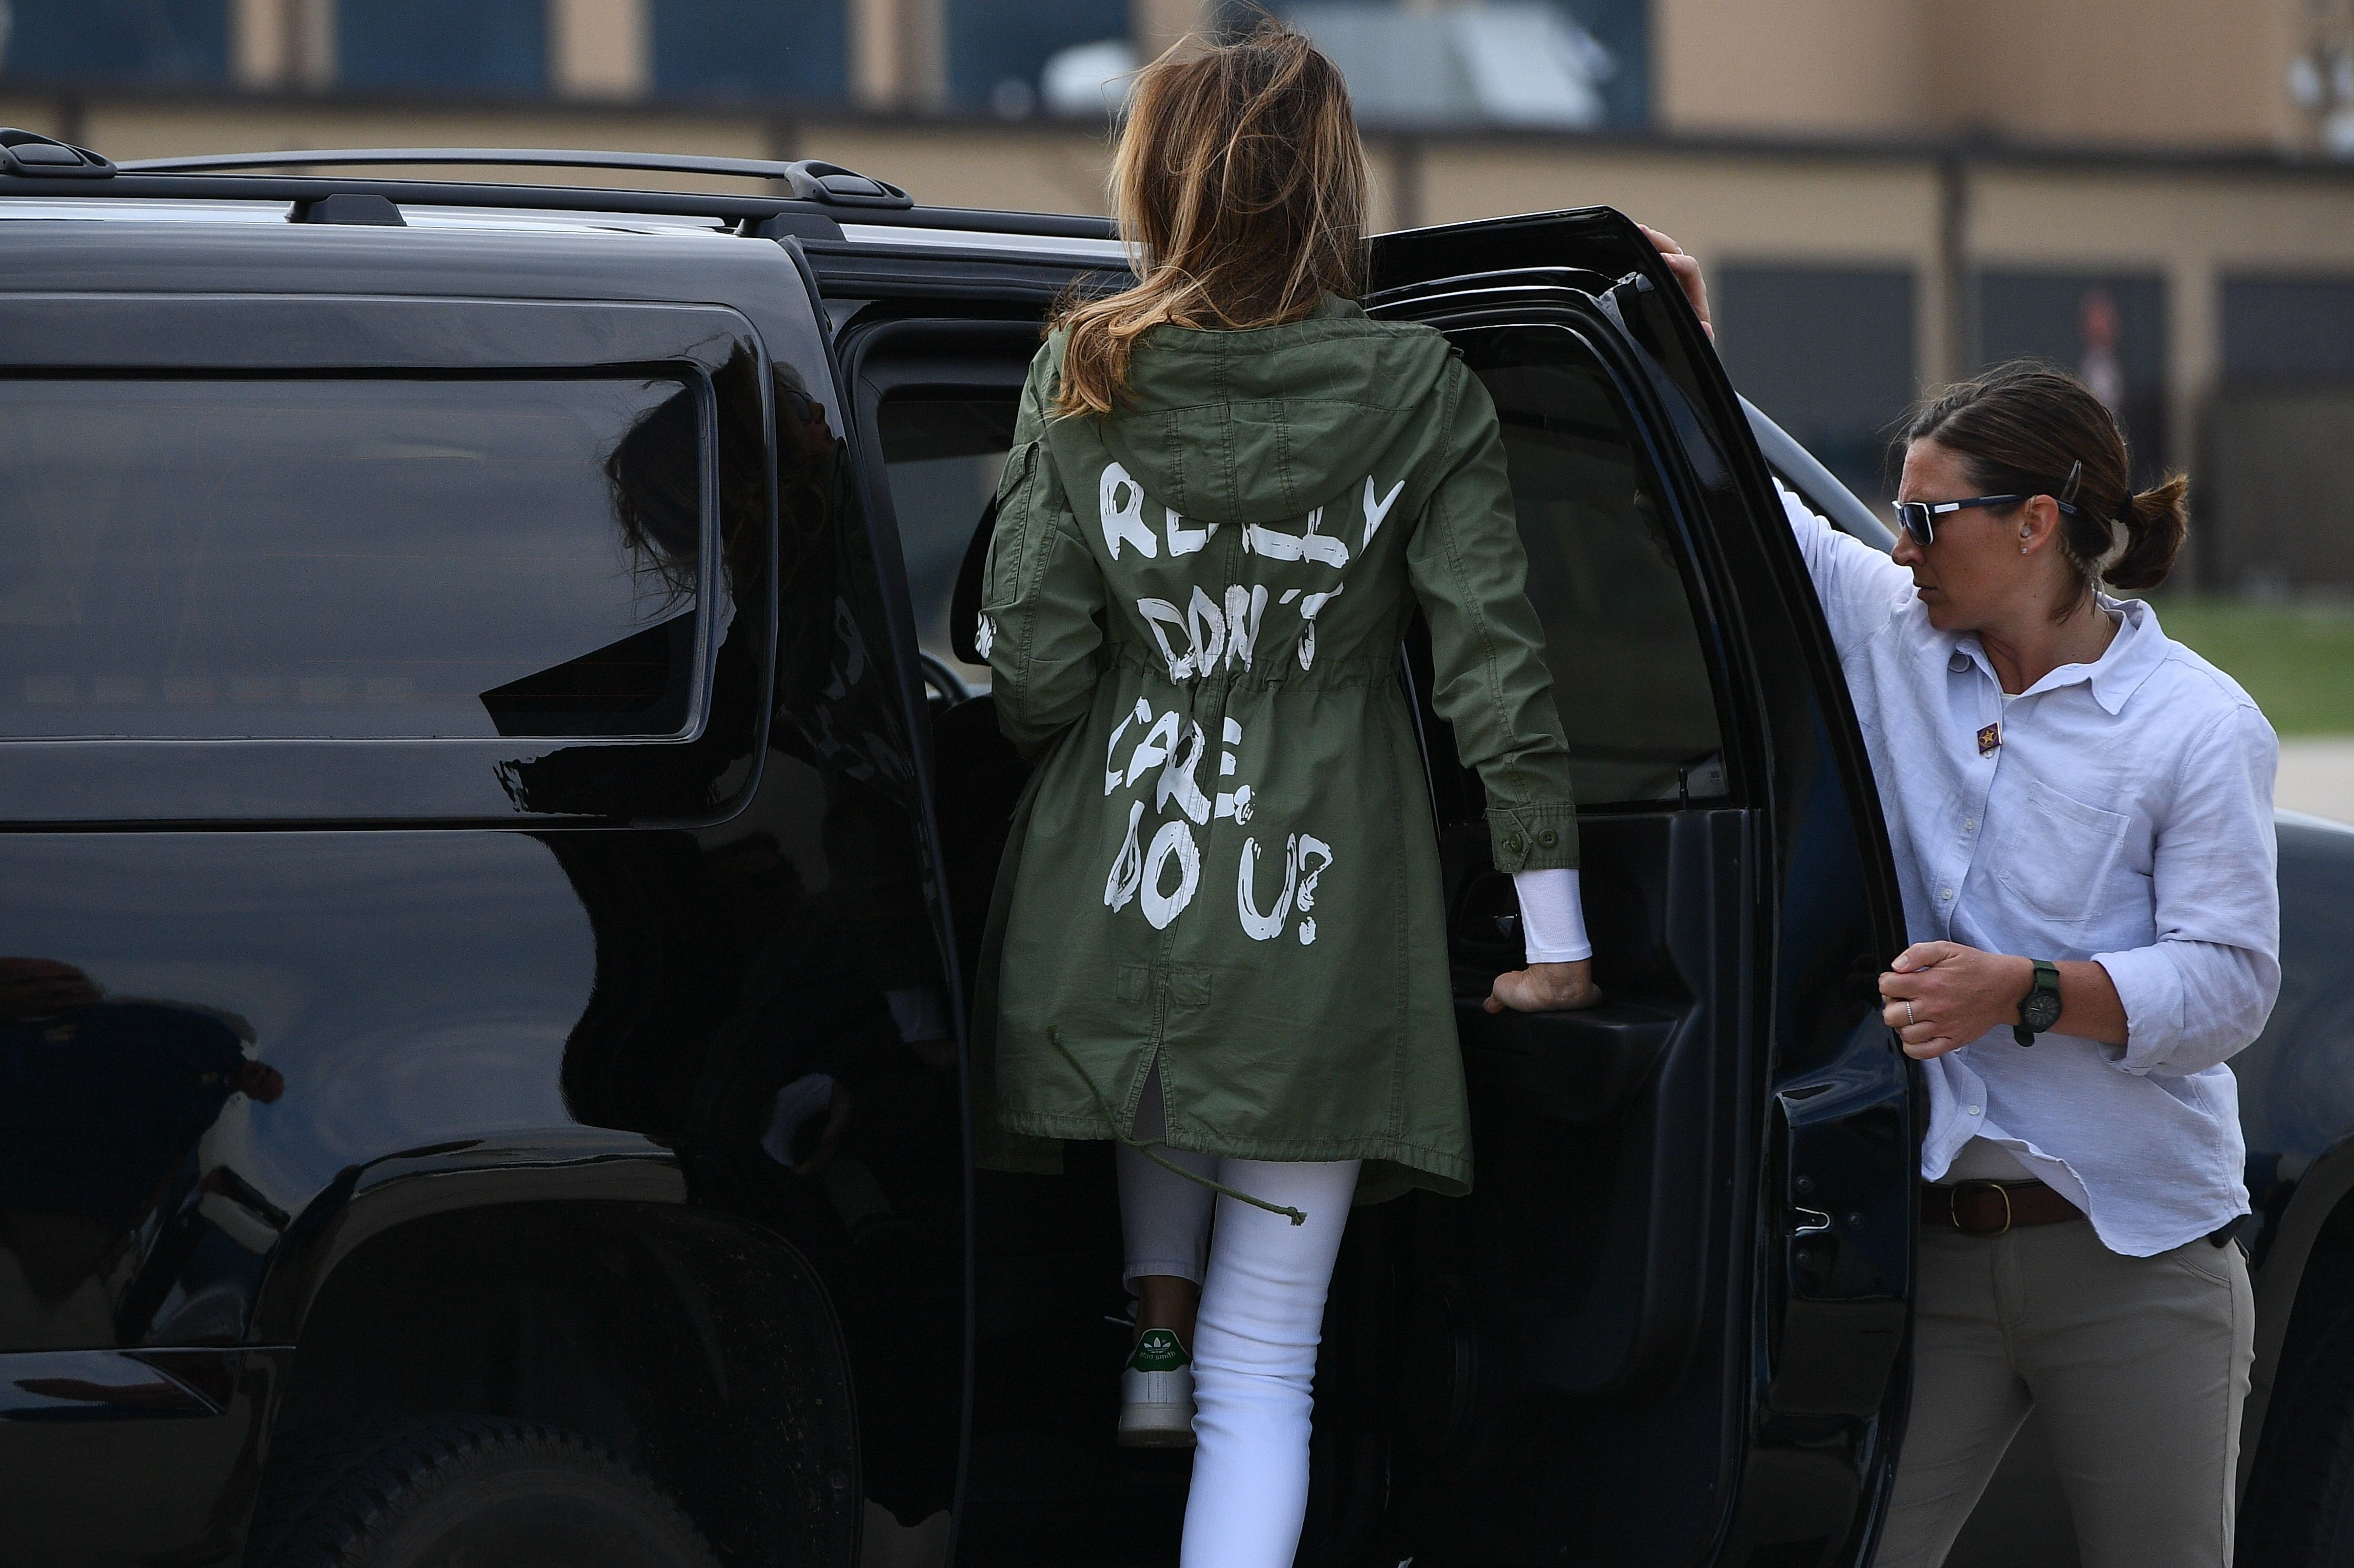 This Jacket Caused A Racket What Exactly Does Melania Trump Not Care About Colorado Public Radio